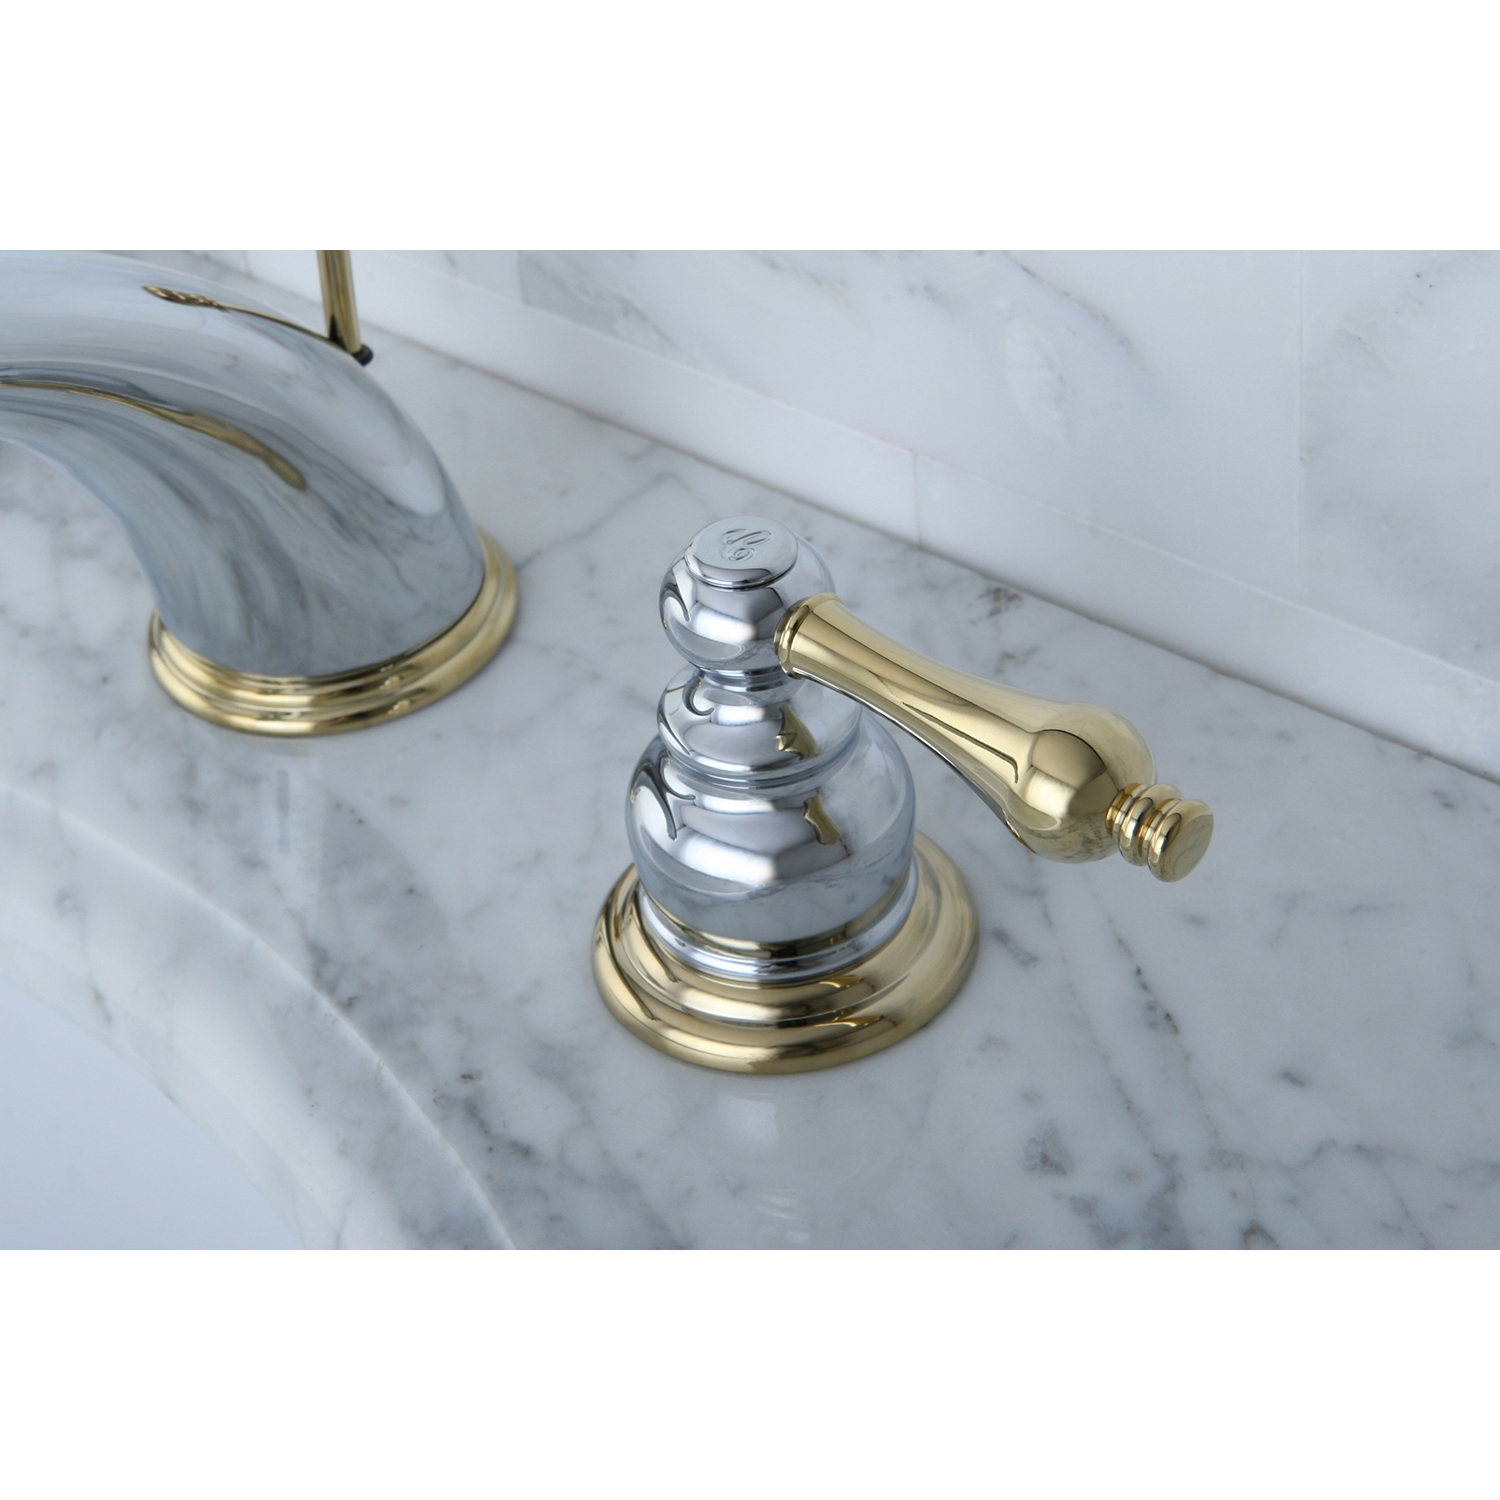 Victorian Polished Brass Widespread Bathroom Faucet: Kingston Brass KB974AL Victorian Widespread Lavatory Faucet With Retail Pop-Up, Polished Chrome